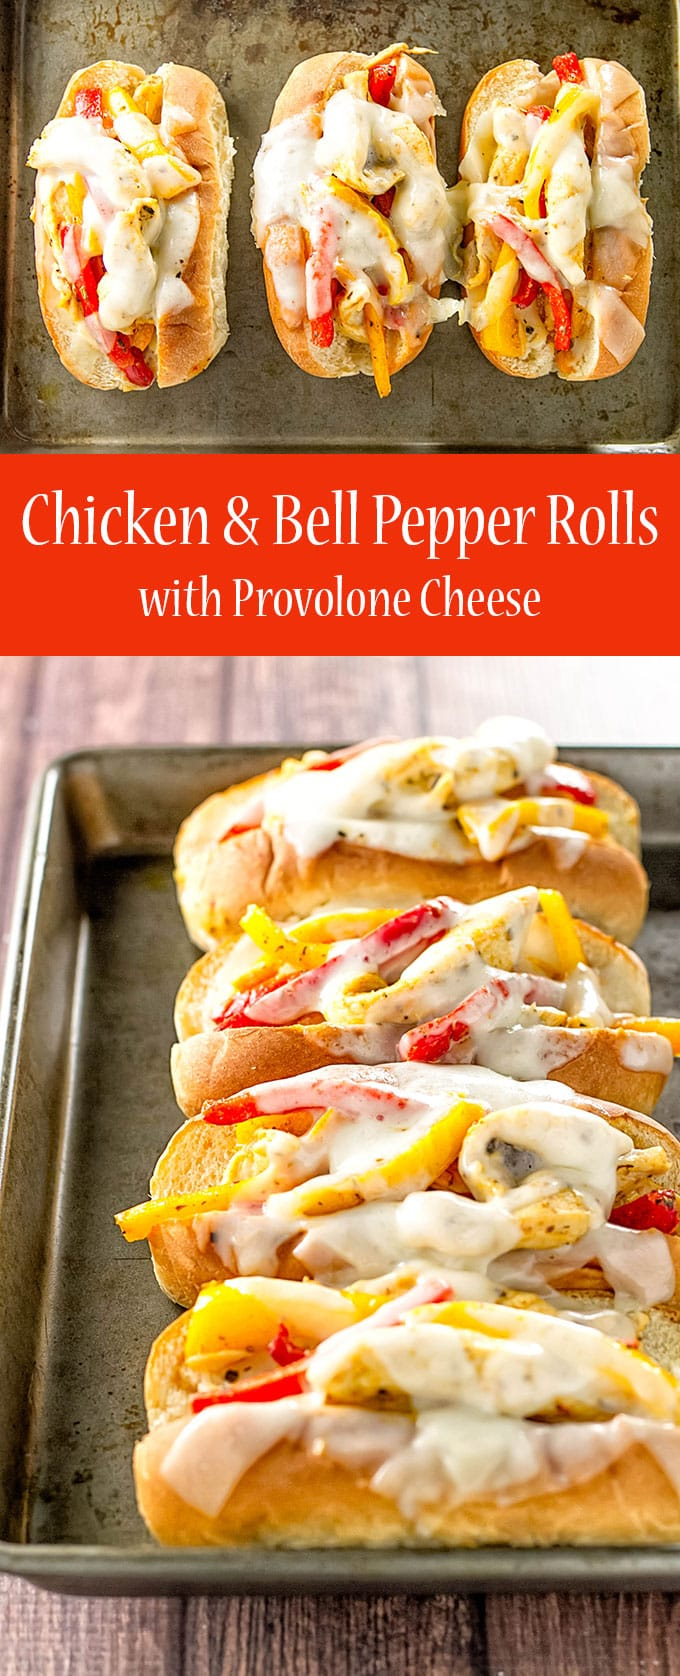 Chicken and peppers stuffed into soft rolls and topped with provolone cheese | girlgonegourmet.com